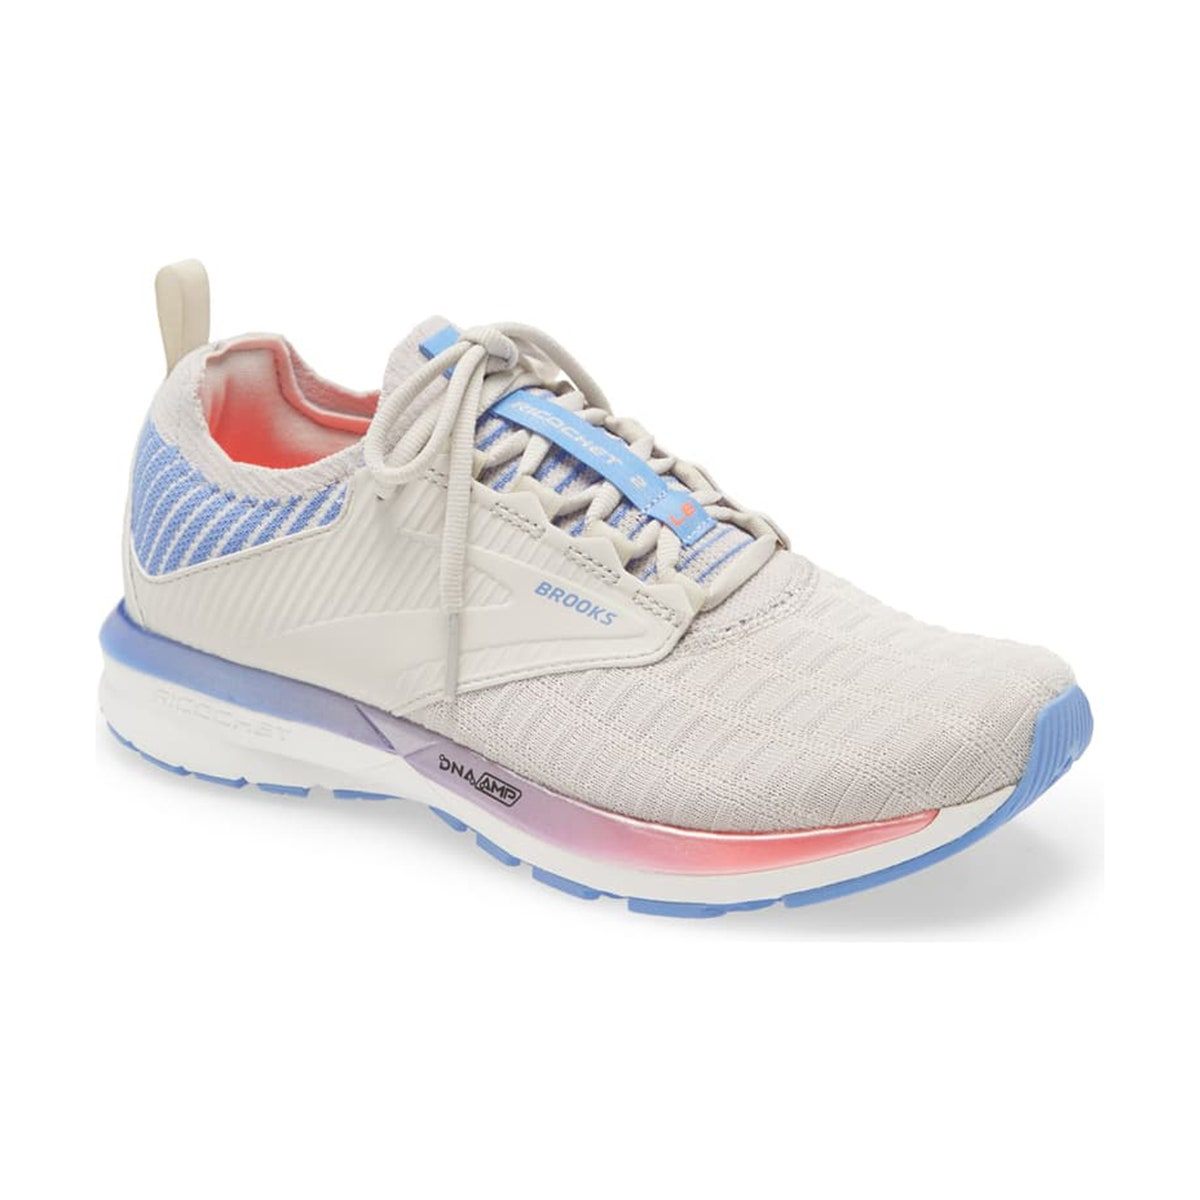 gray running shoe with blue and pink